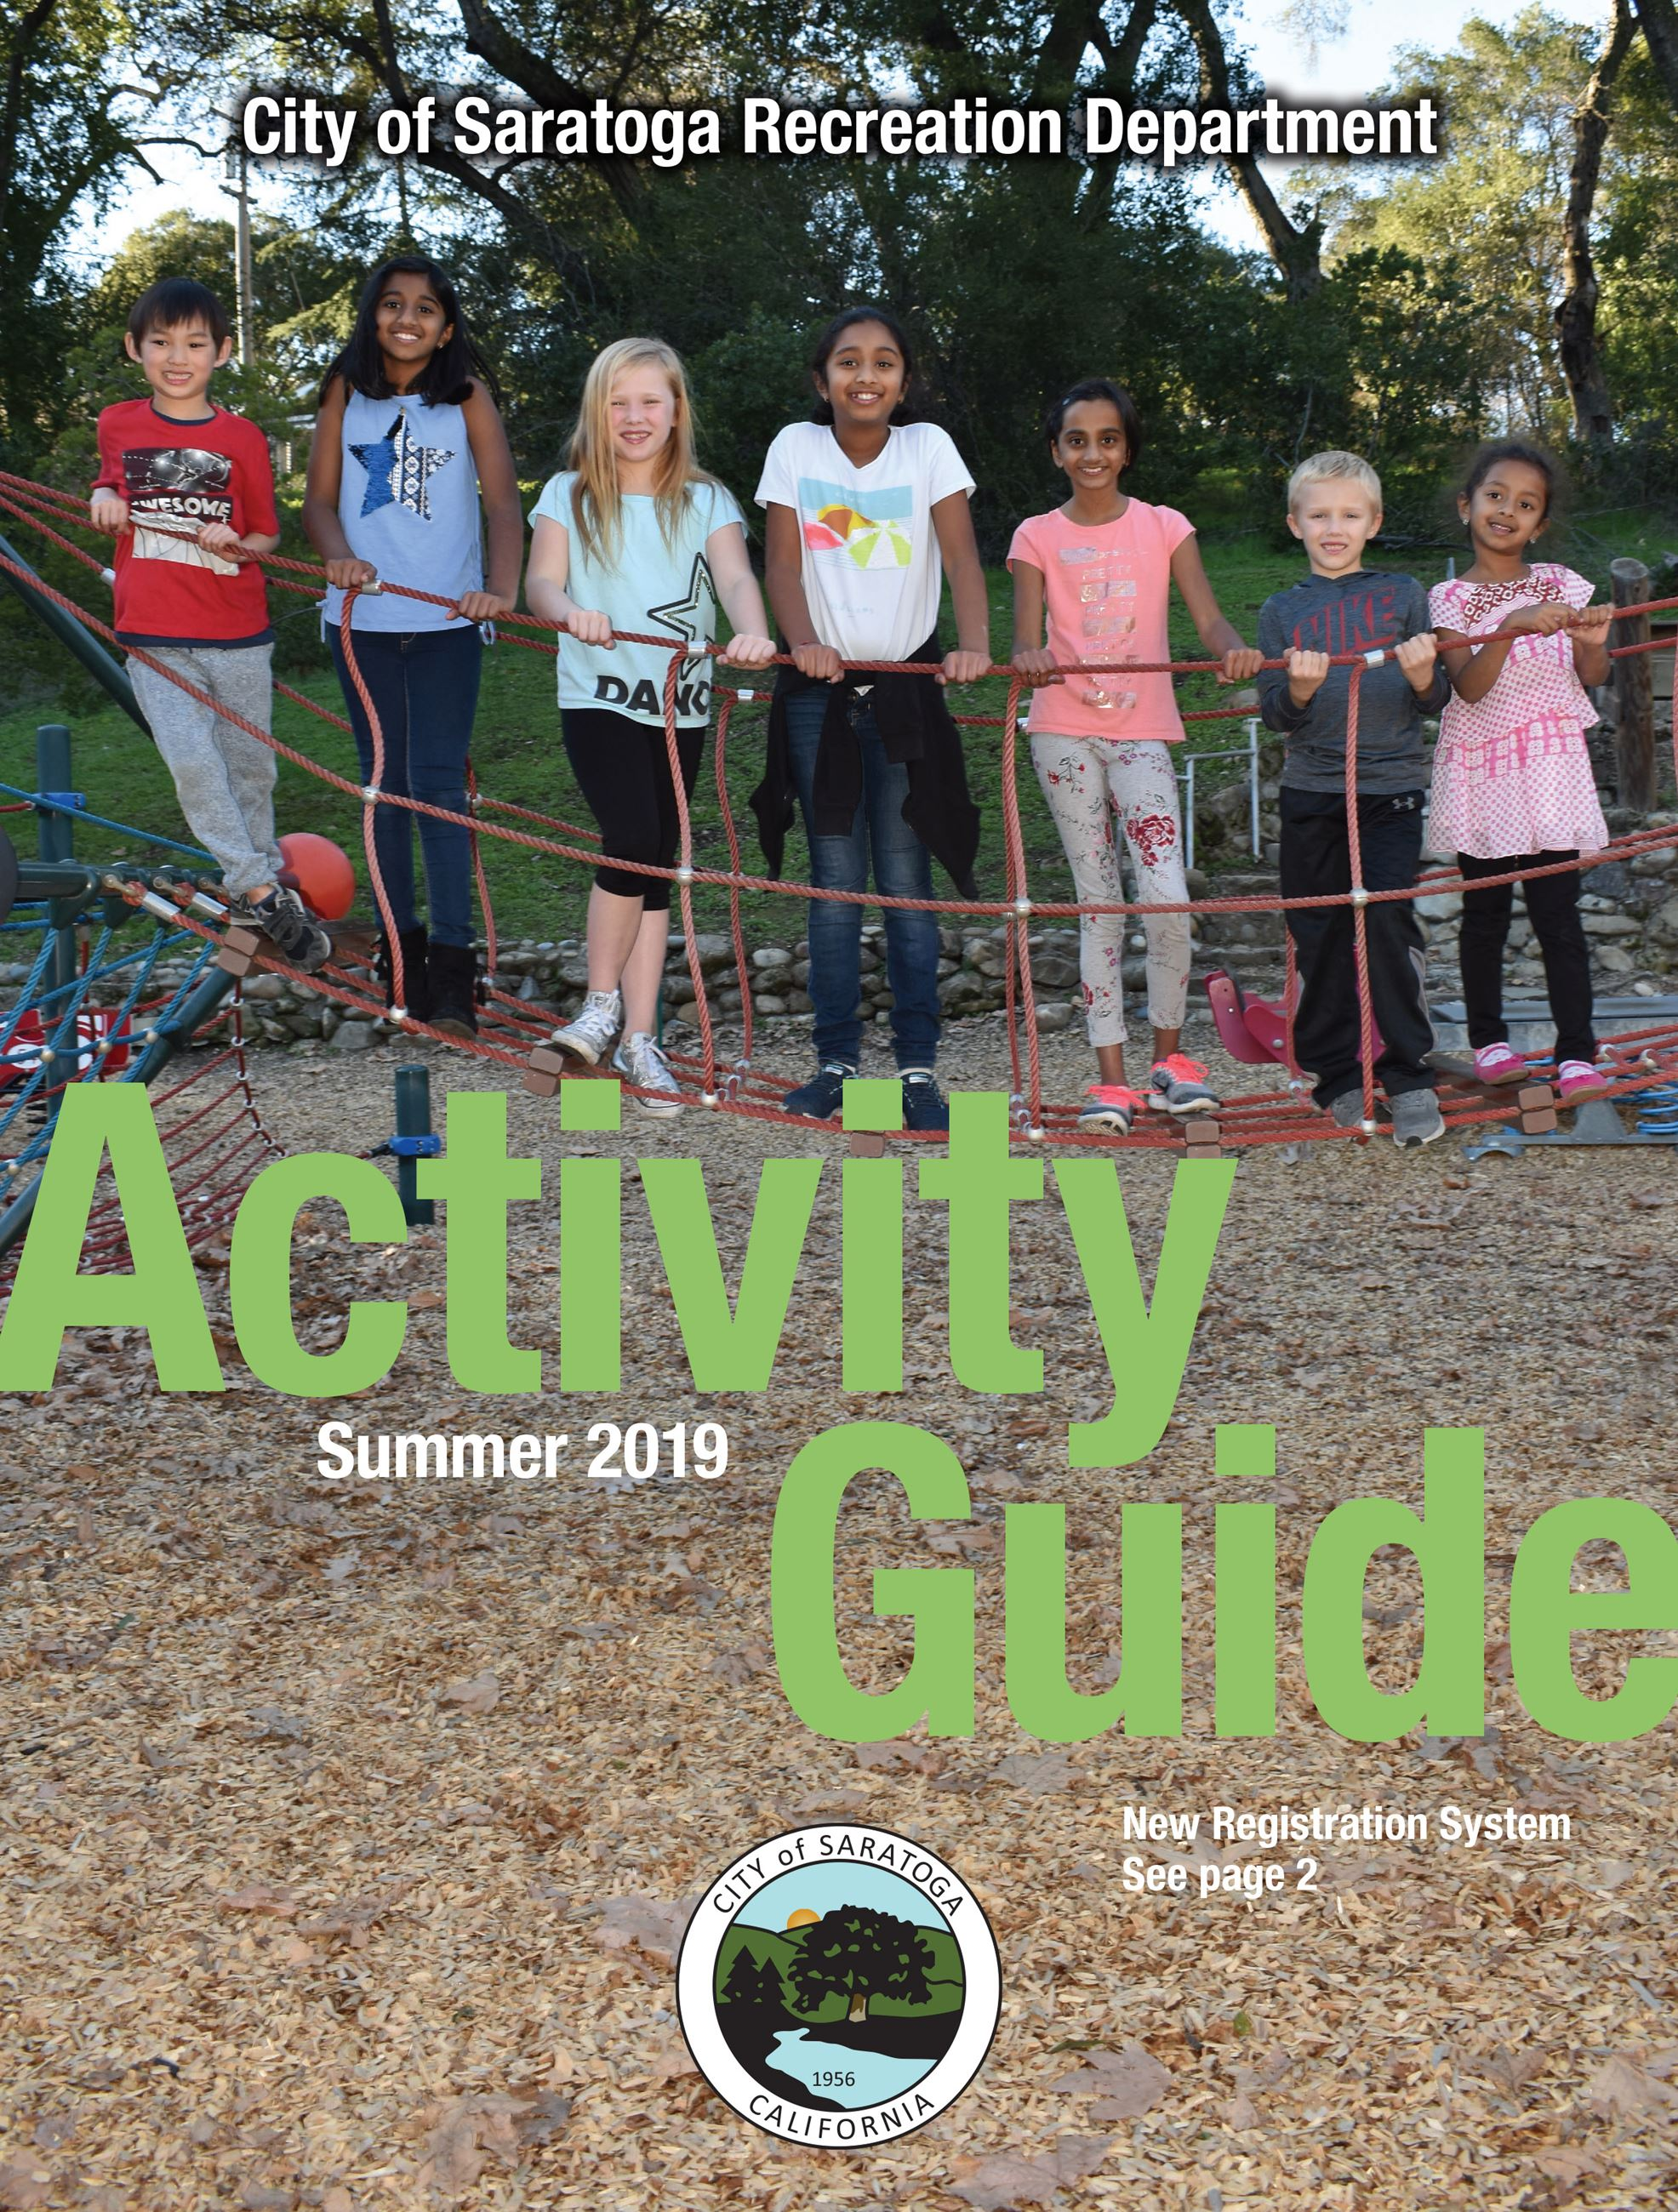 2019 Summer Recreation Activity Guide